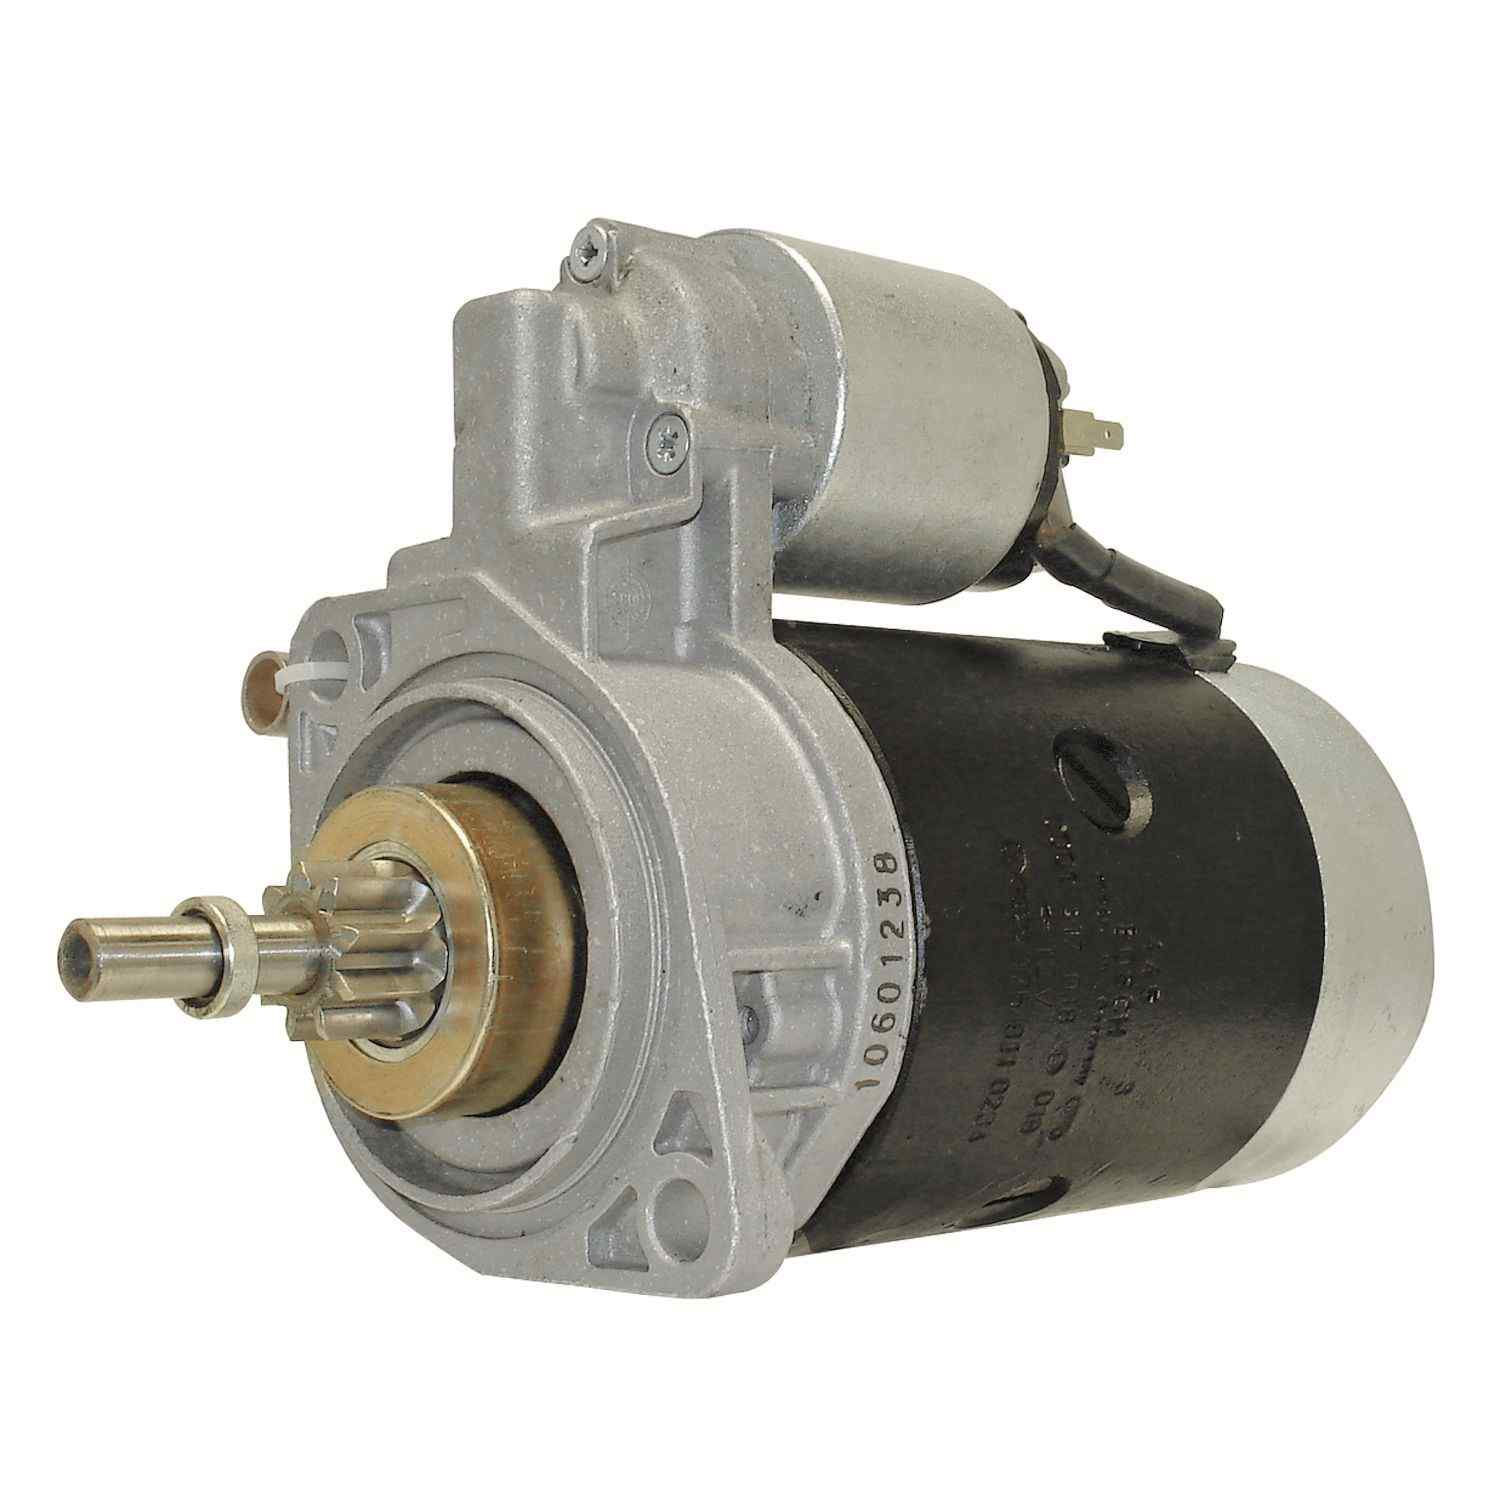 ACDELCO GOLD/PROFESSIONAL - Reman Starter Motor - DCC 336-1379